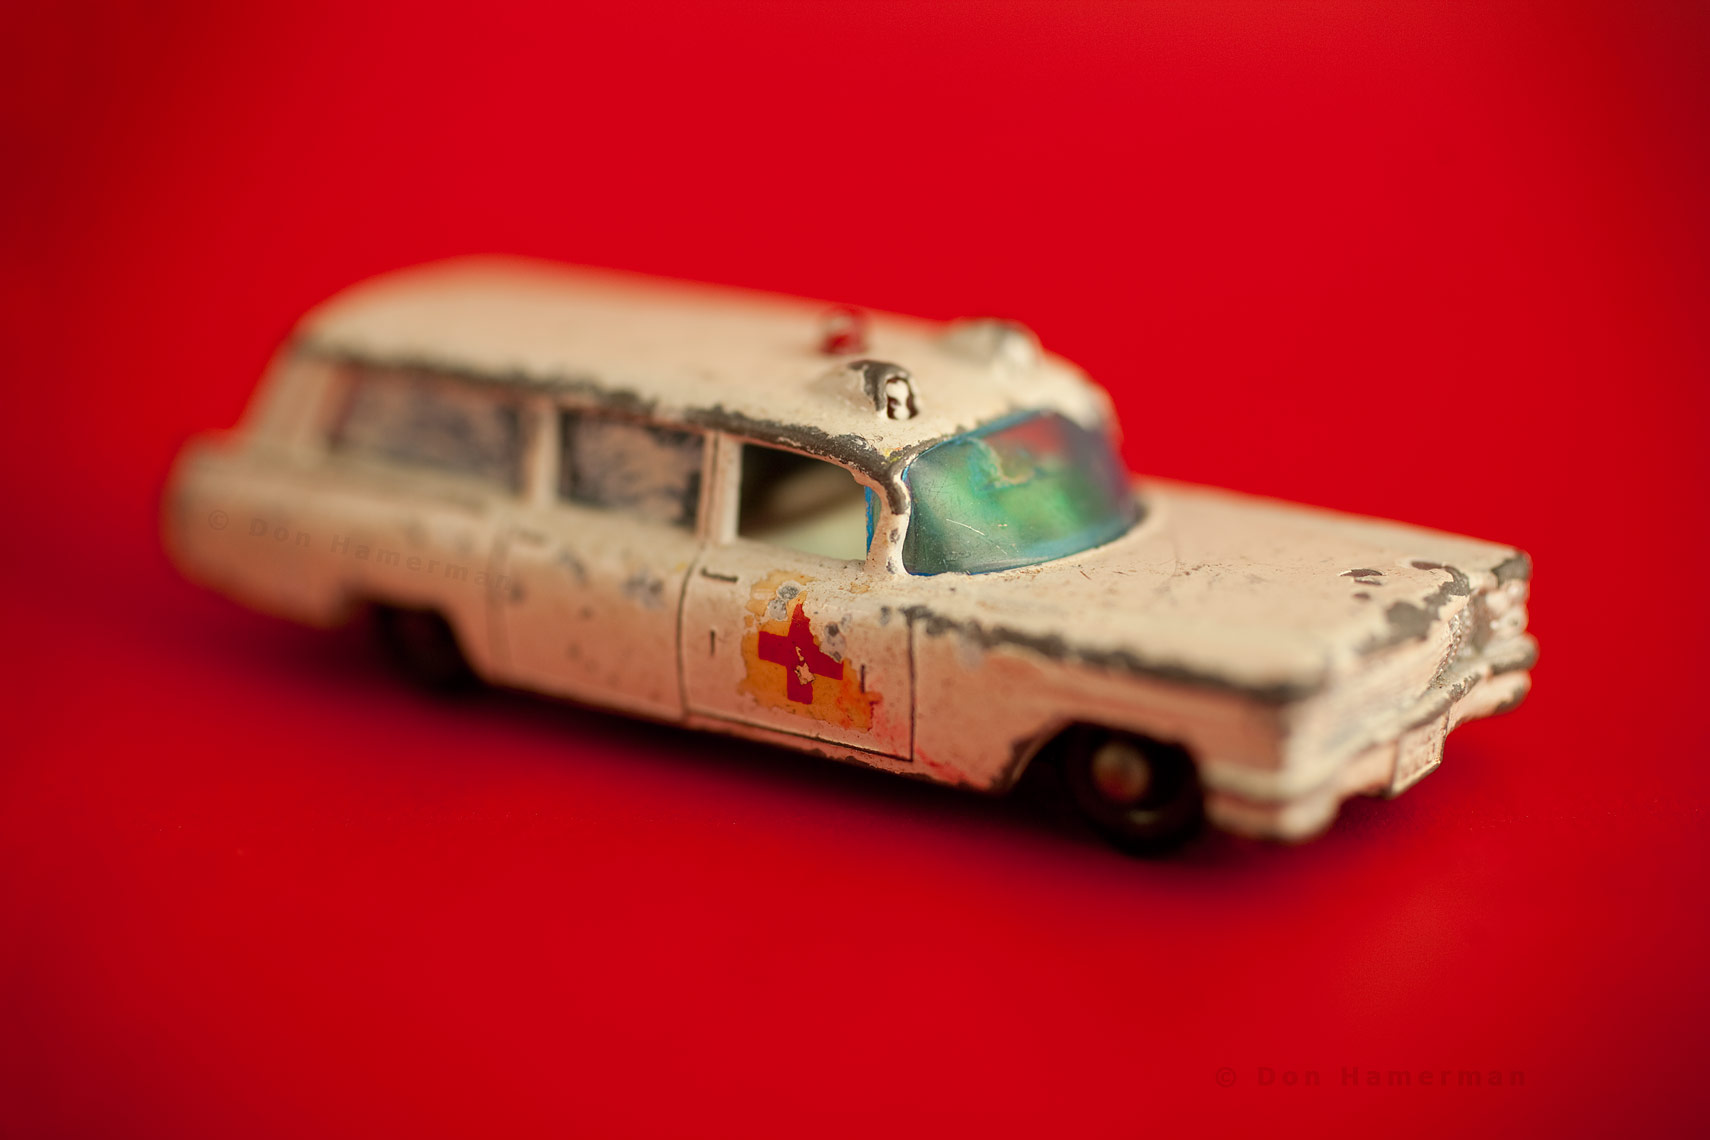 26_hamerman_matchbox.jpg